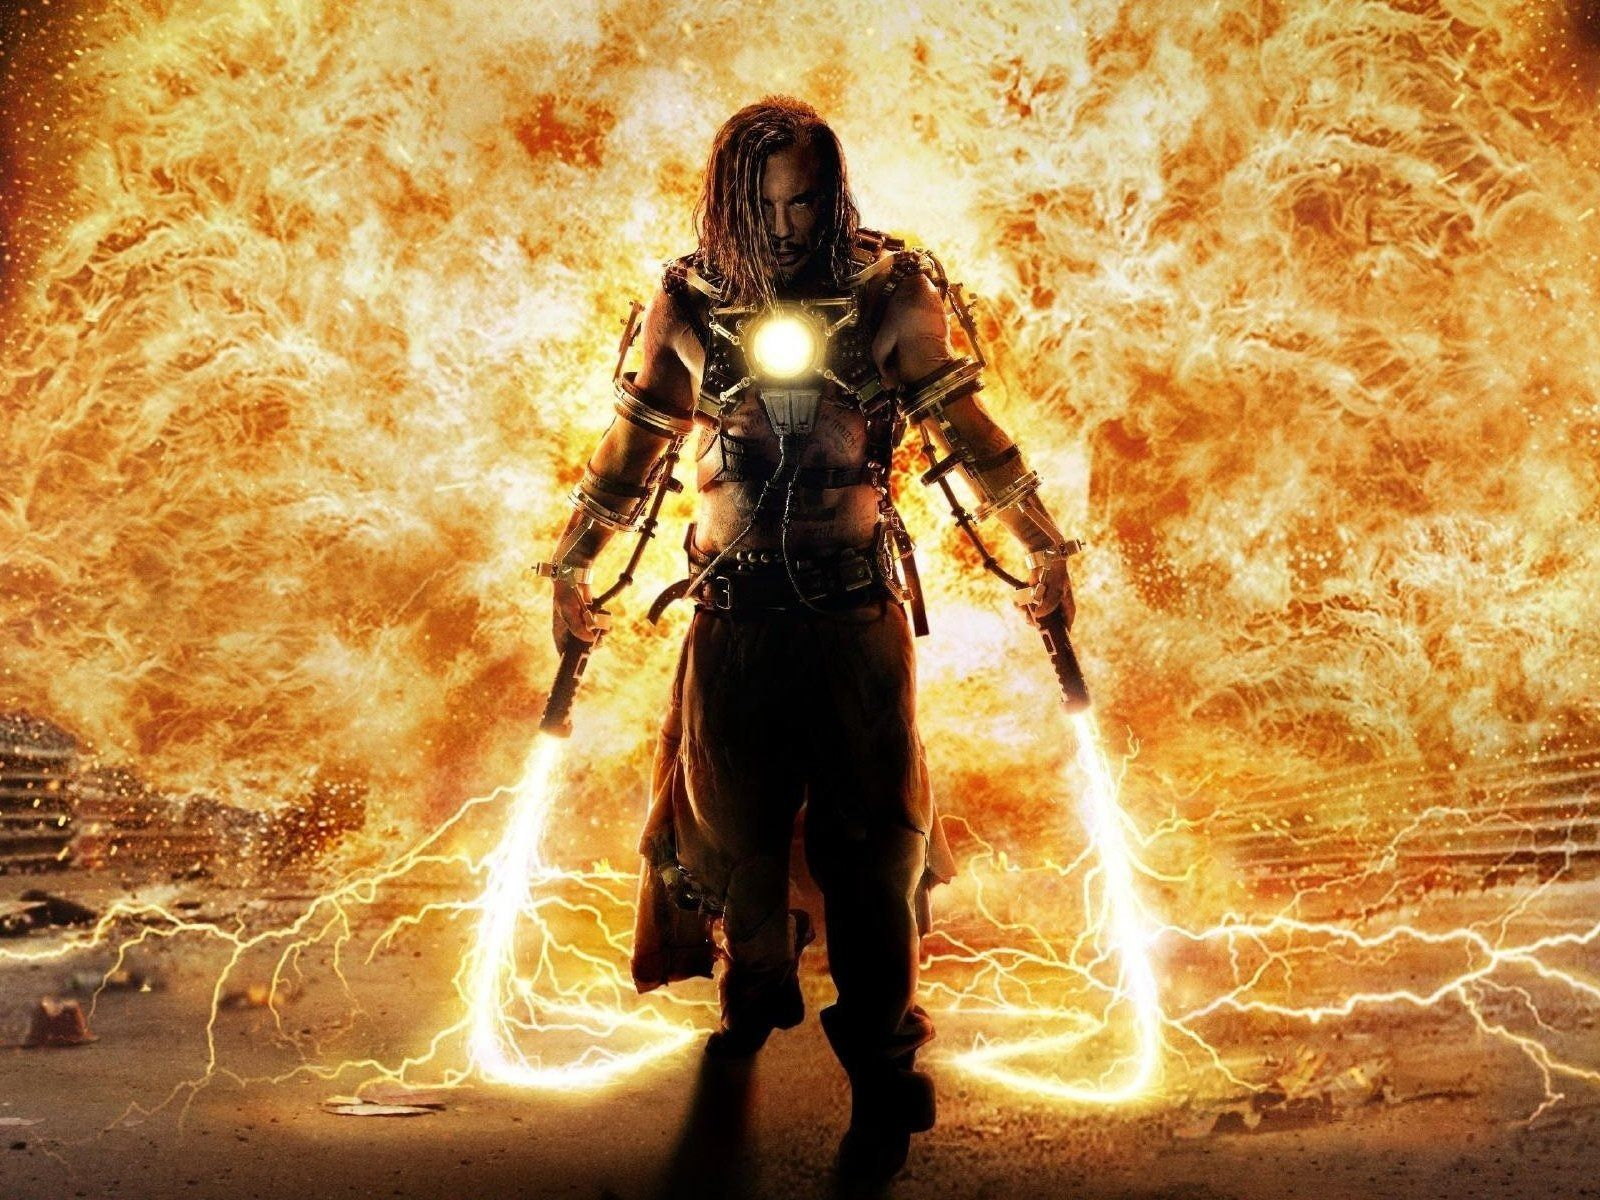 Man On Fire Wallpapers Top Free Man On Fire Backgrounds Wallpaperaccess